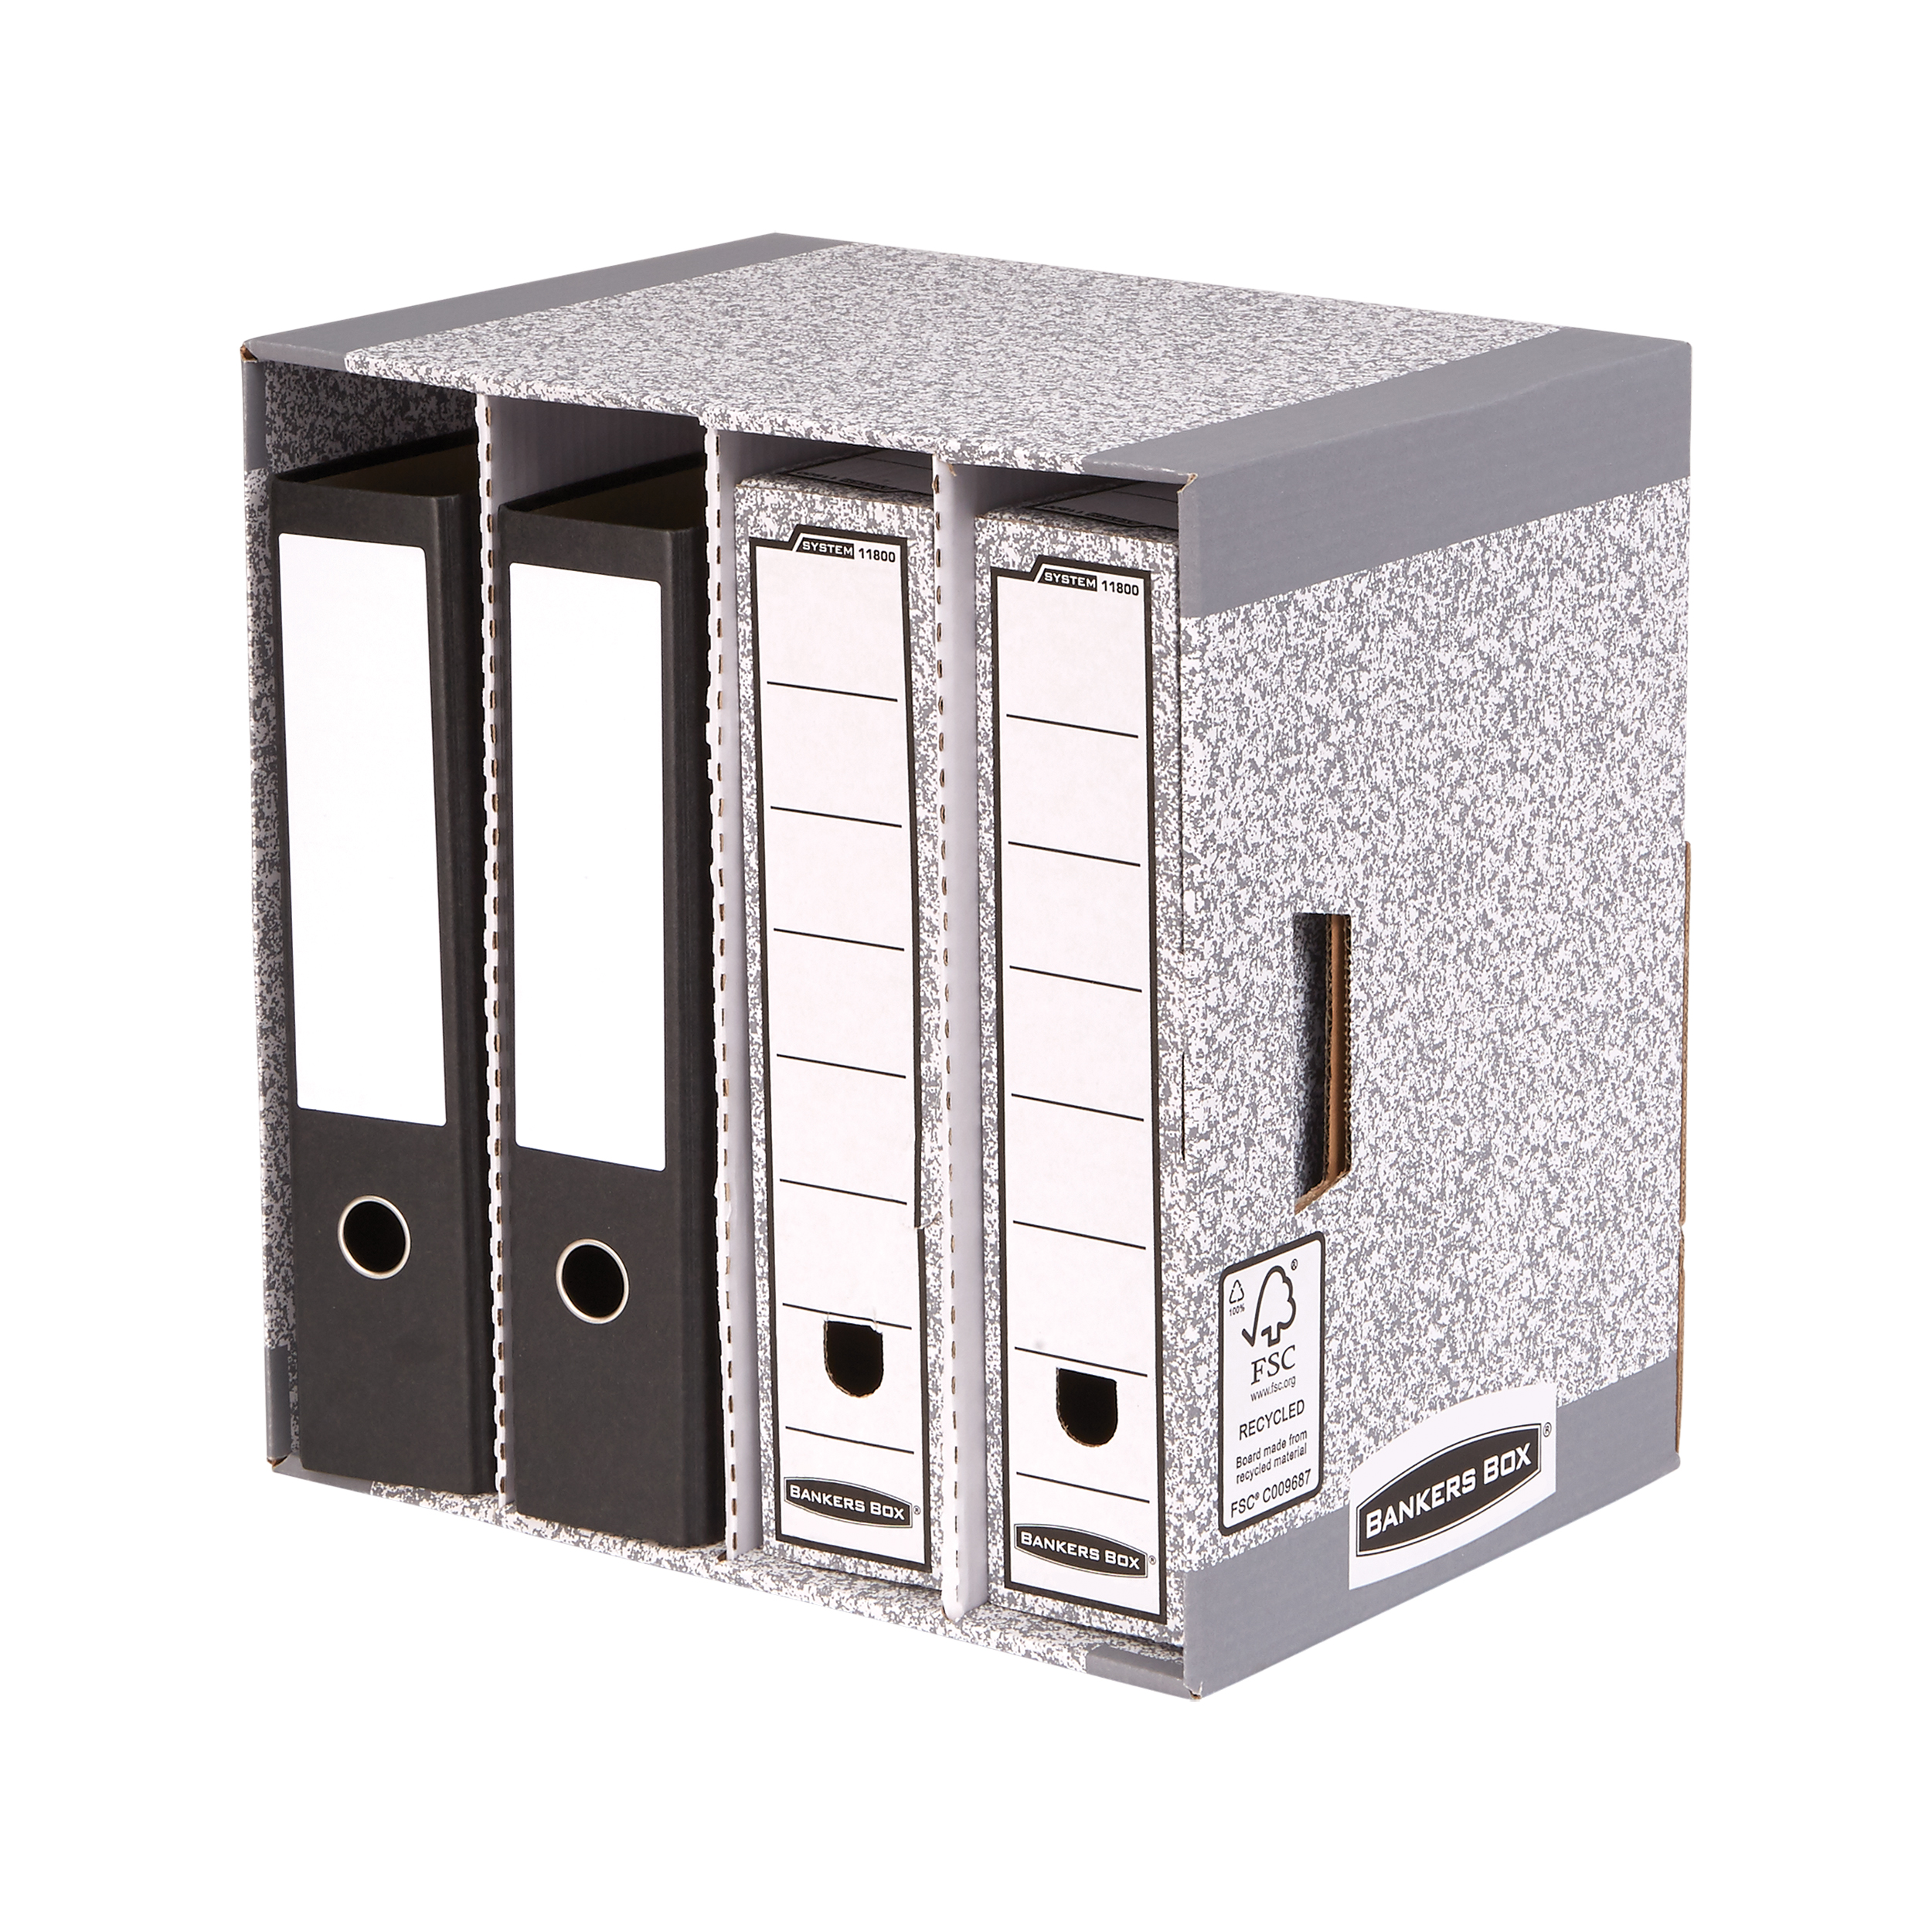 Lever Arch File Store Bankers Box by Fellowes System File Store W380xD280xH90mm Ref 01840 Pack 5